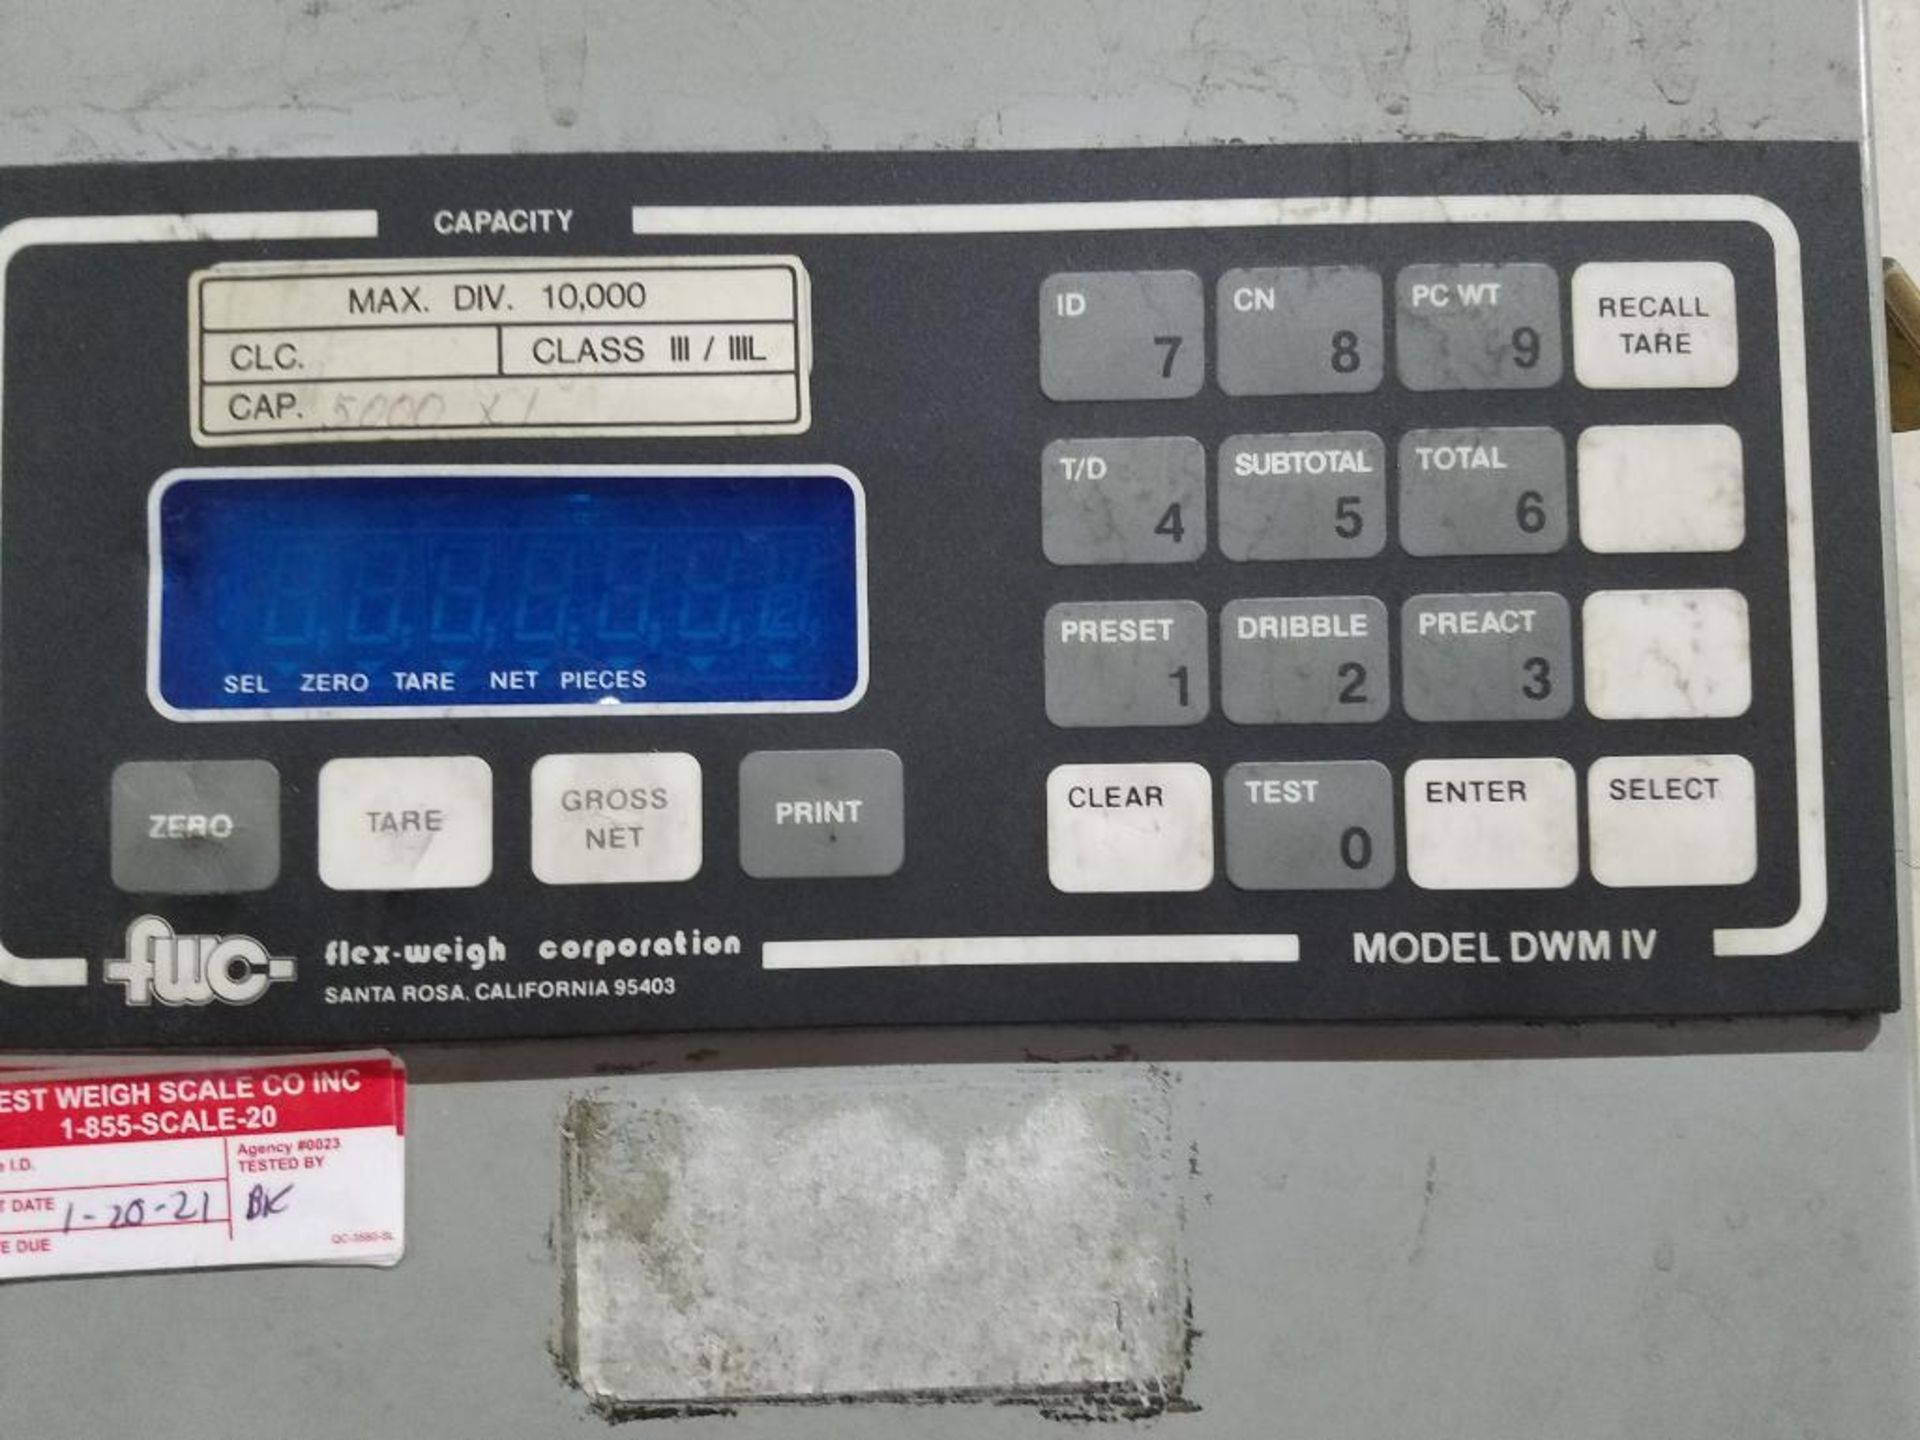 Flex-Weigh 4 ft. x 5 ft. platform scale - Image 3 of 4